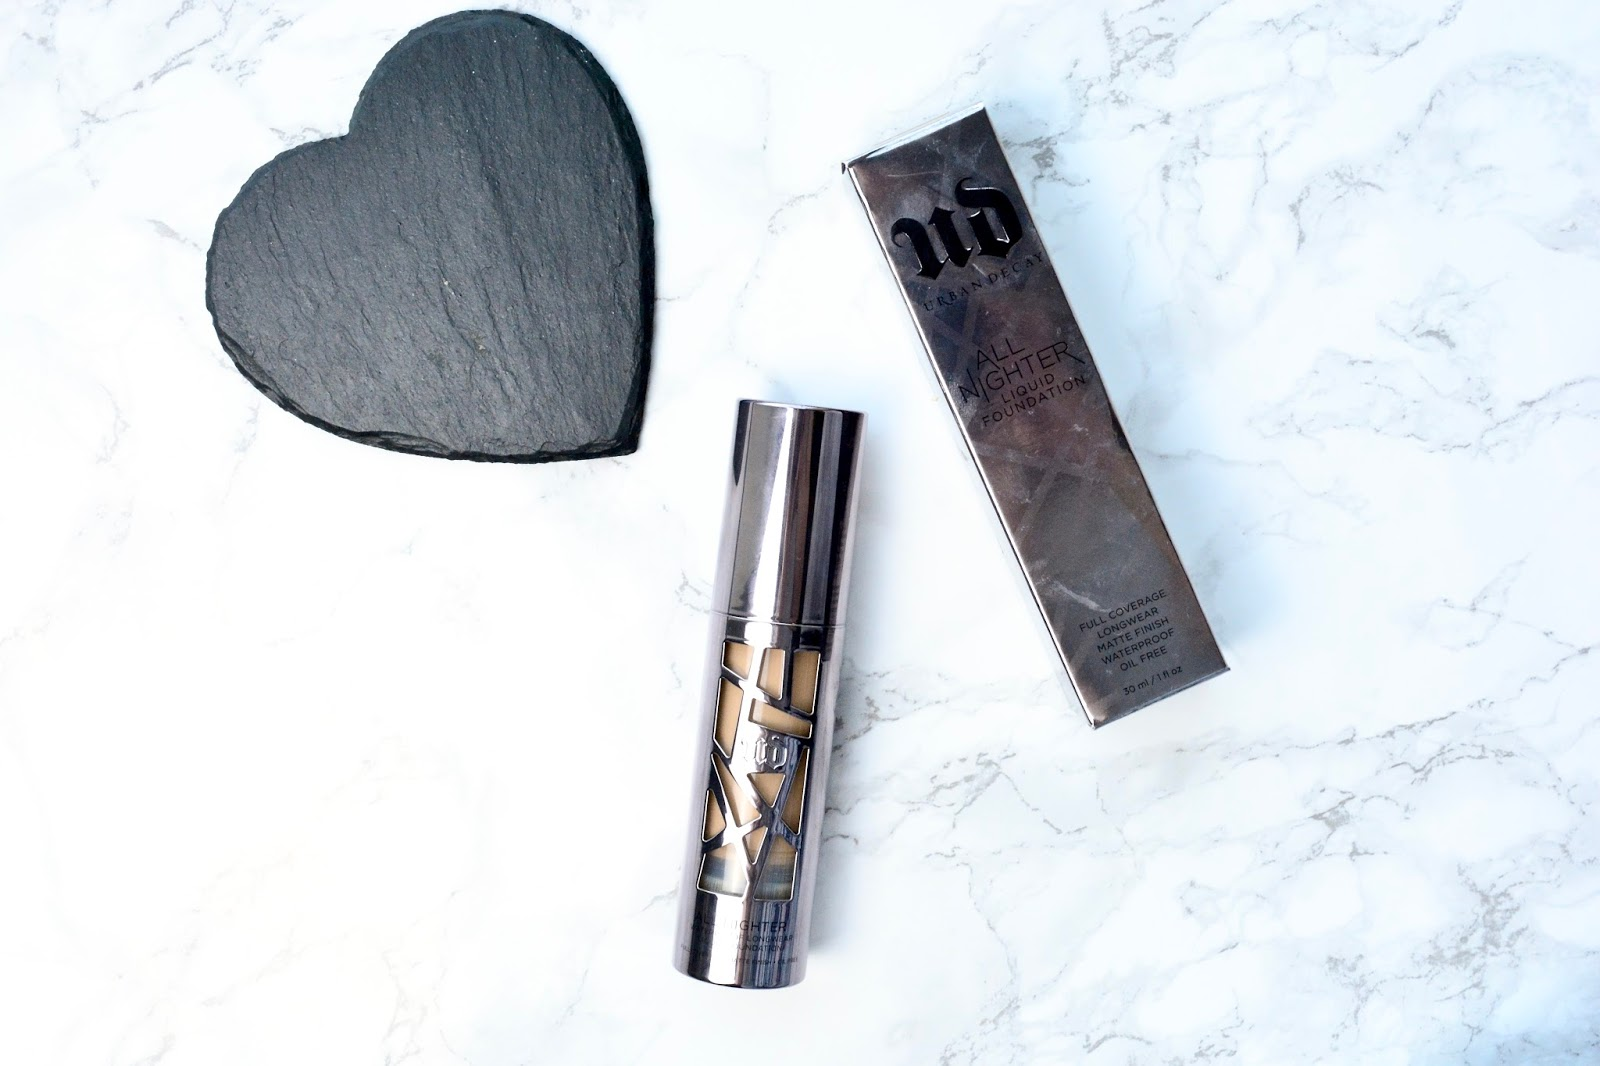 Urban Decay, Urban Decay All Nighter Foundation, All Nighter Foundation, Foundation, Makeup